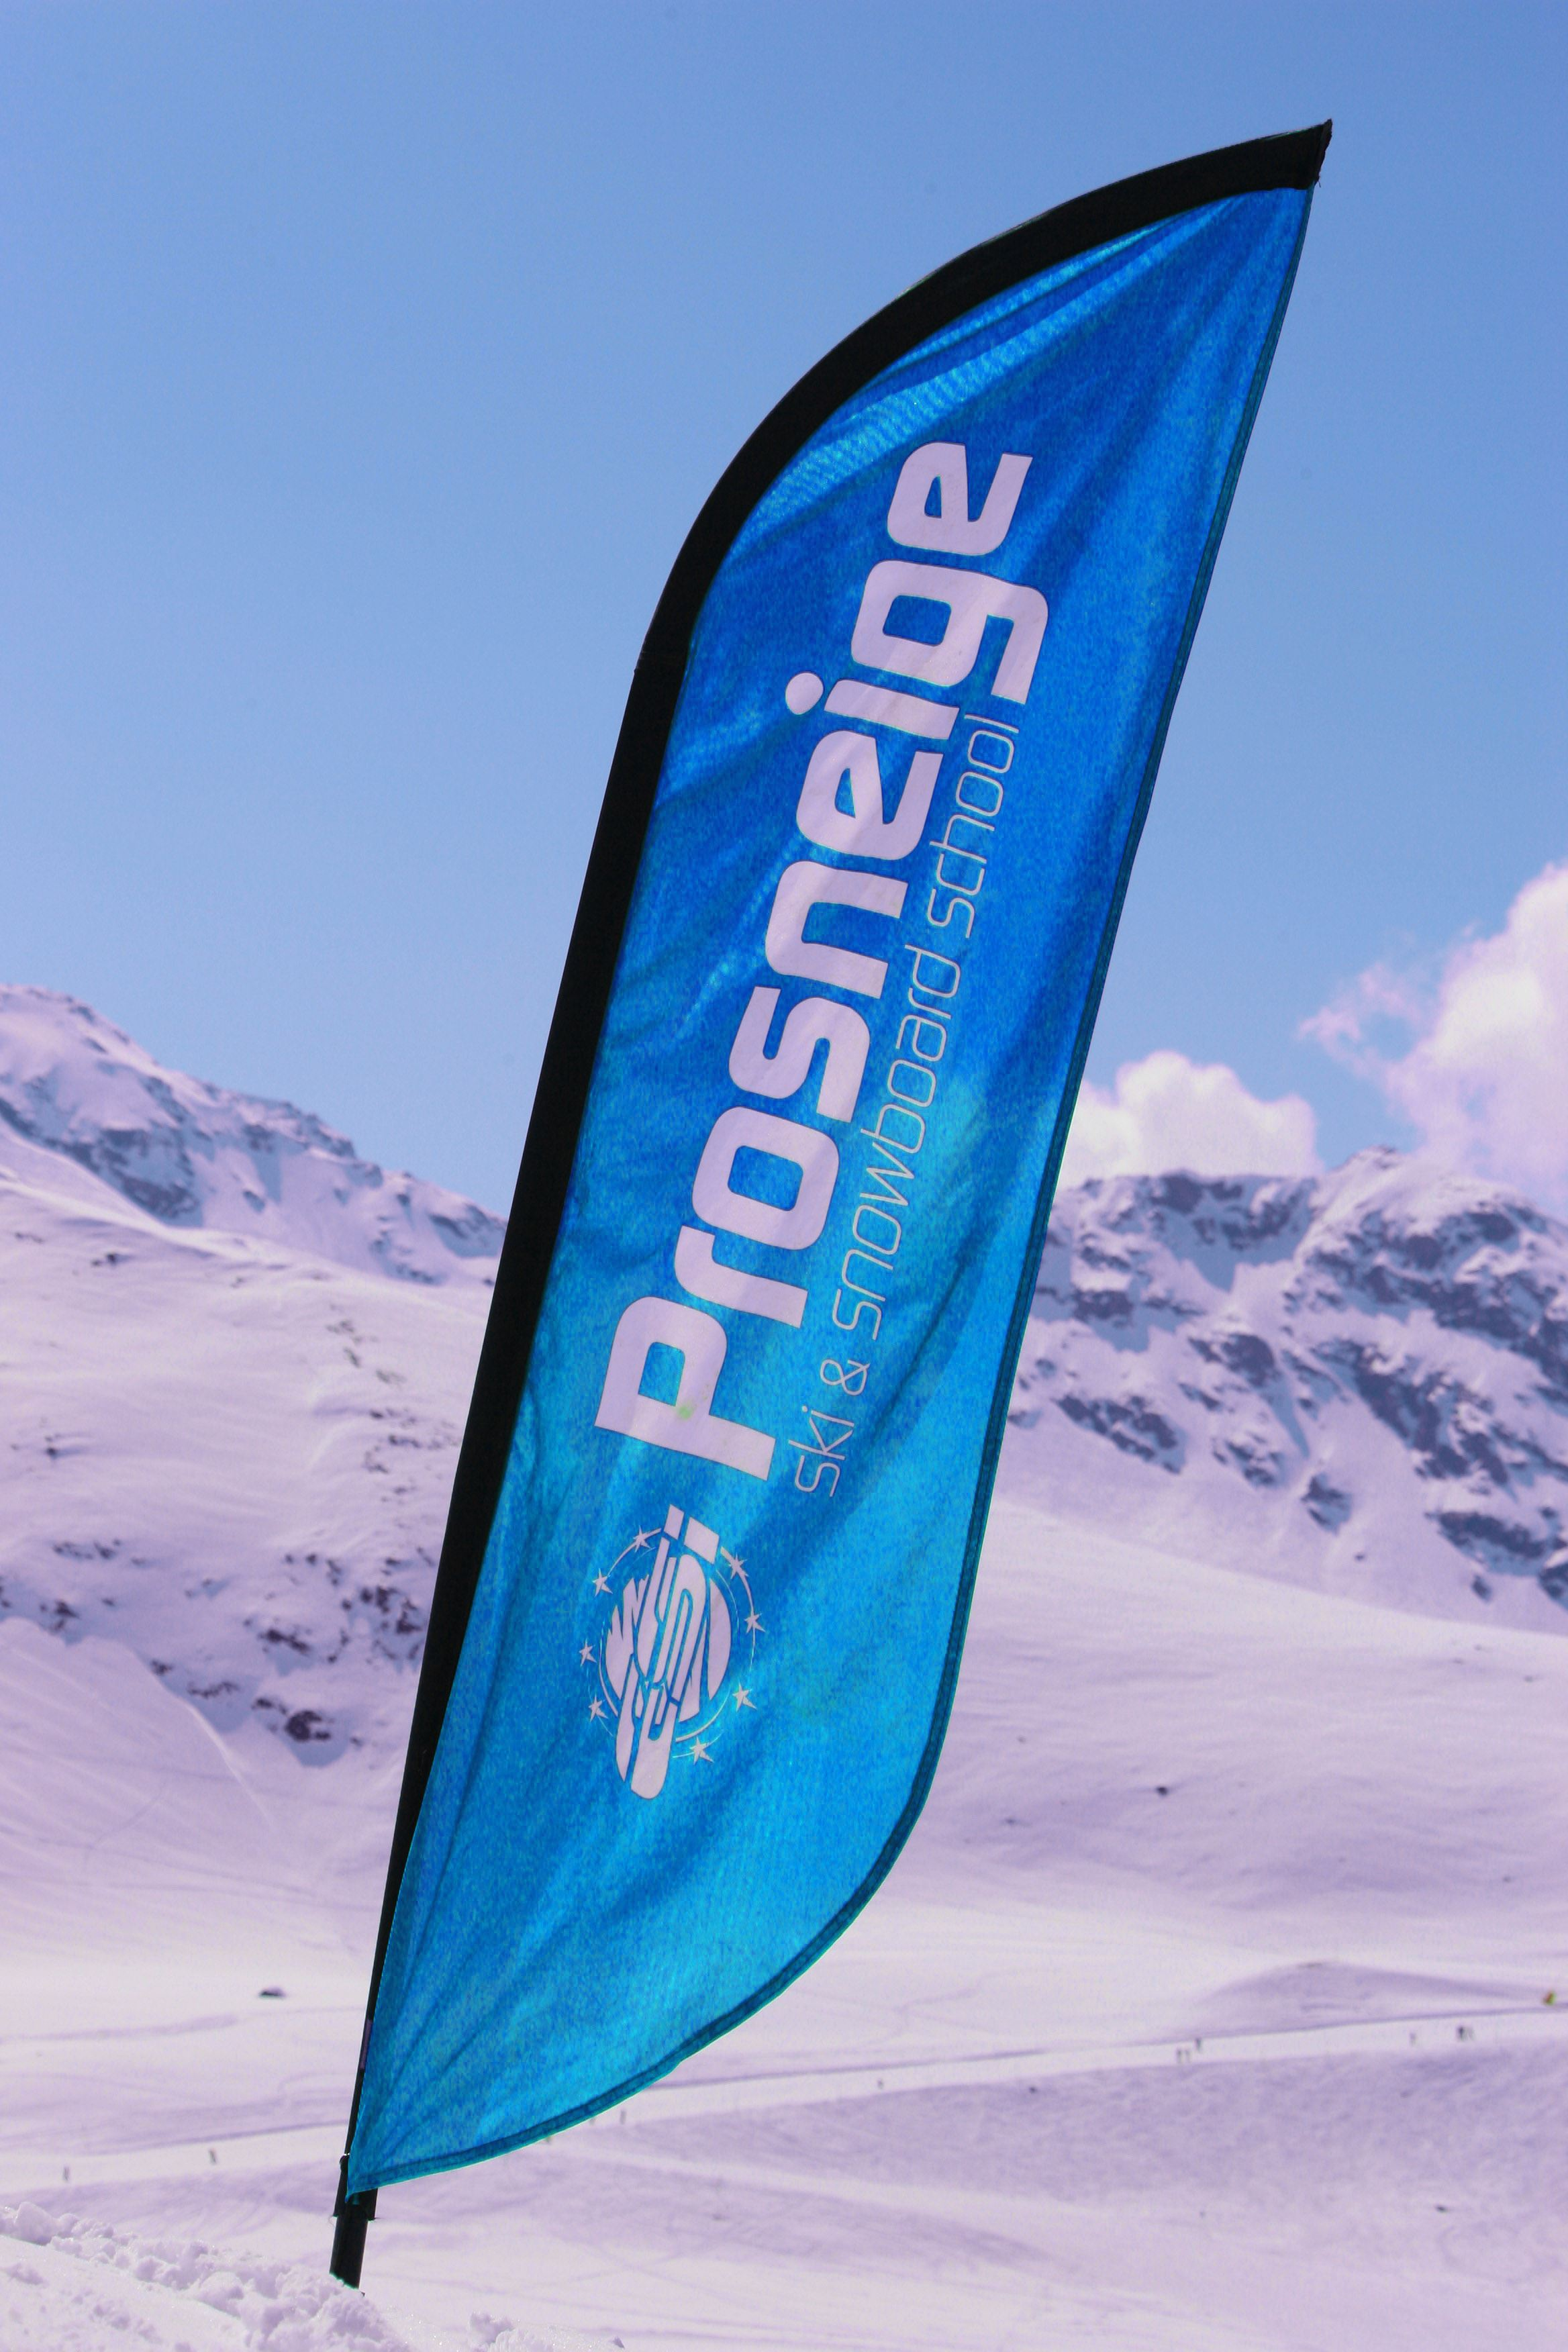 PROSNEIGE SKI SCHOOL - Baby skieur from 2 years old on Tuesday, Wednesday and Thursday from 4pm to 5pm